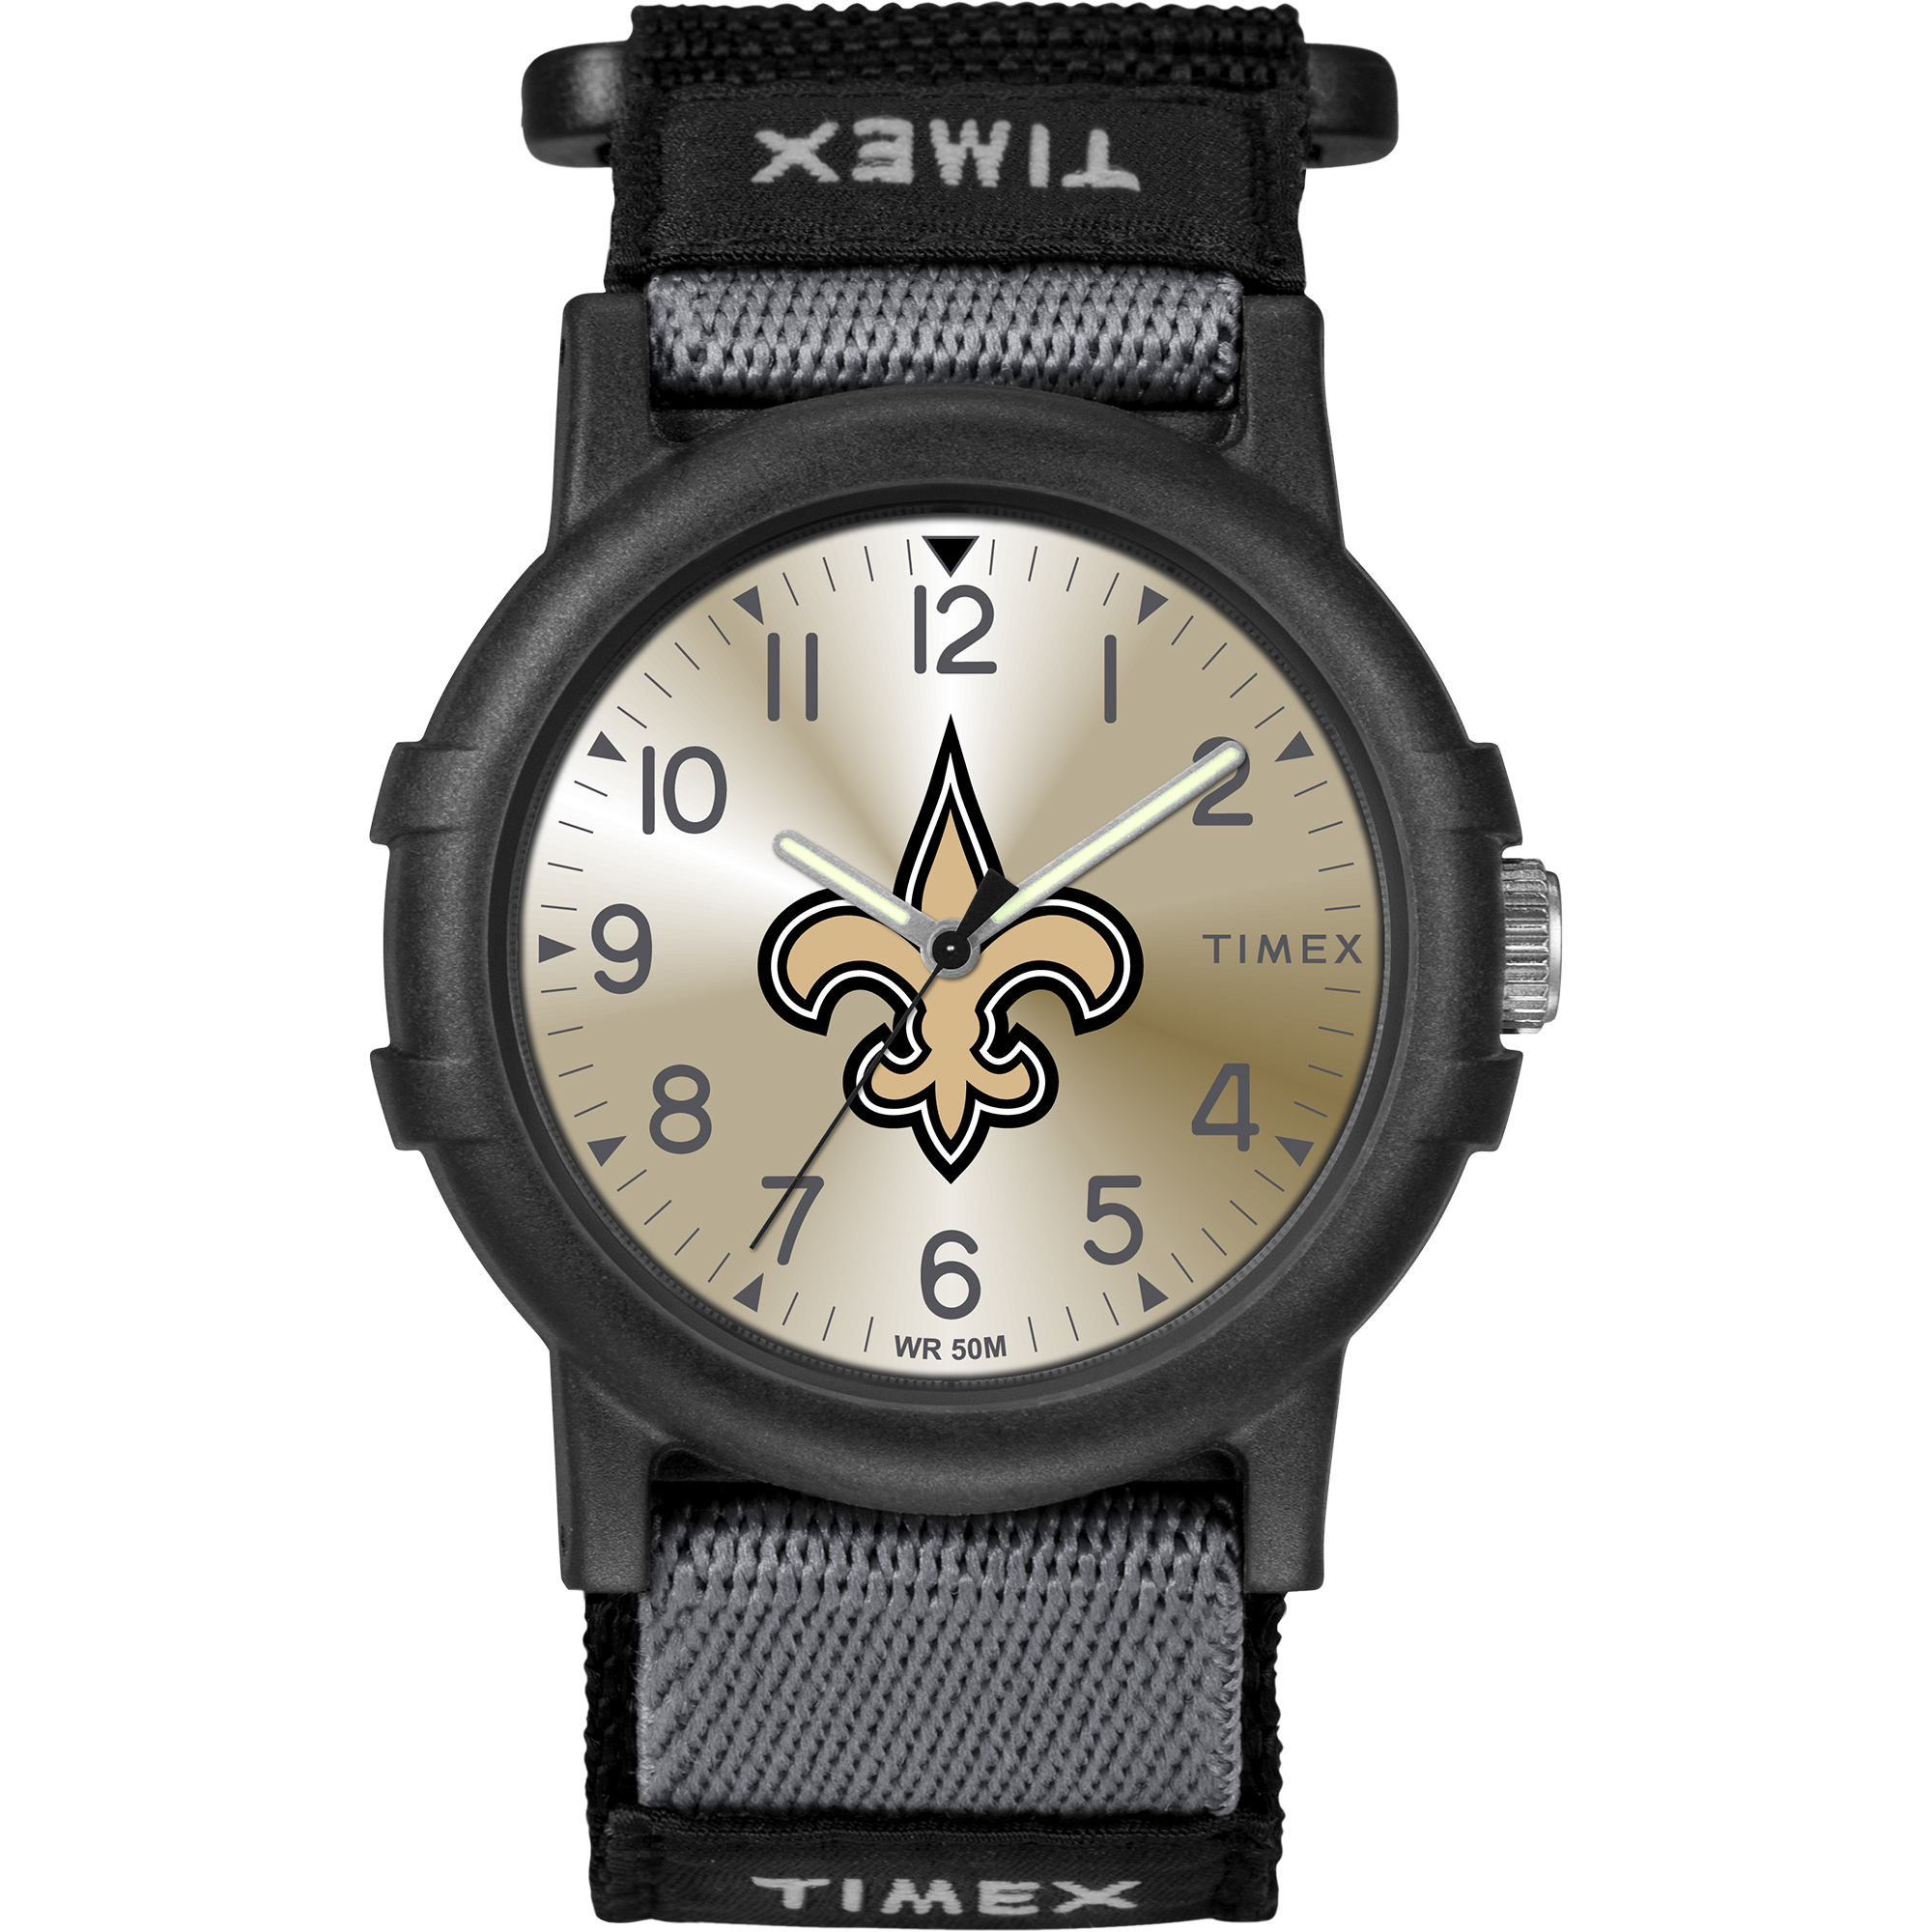 Timex - NFL Tribute Collection Recruite Youth Watch, New Orleans Saints